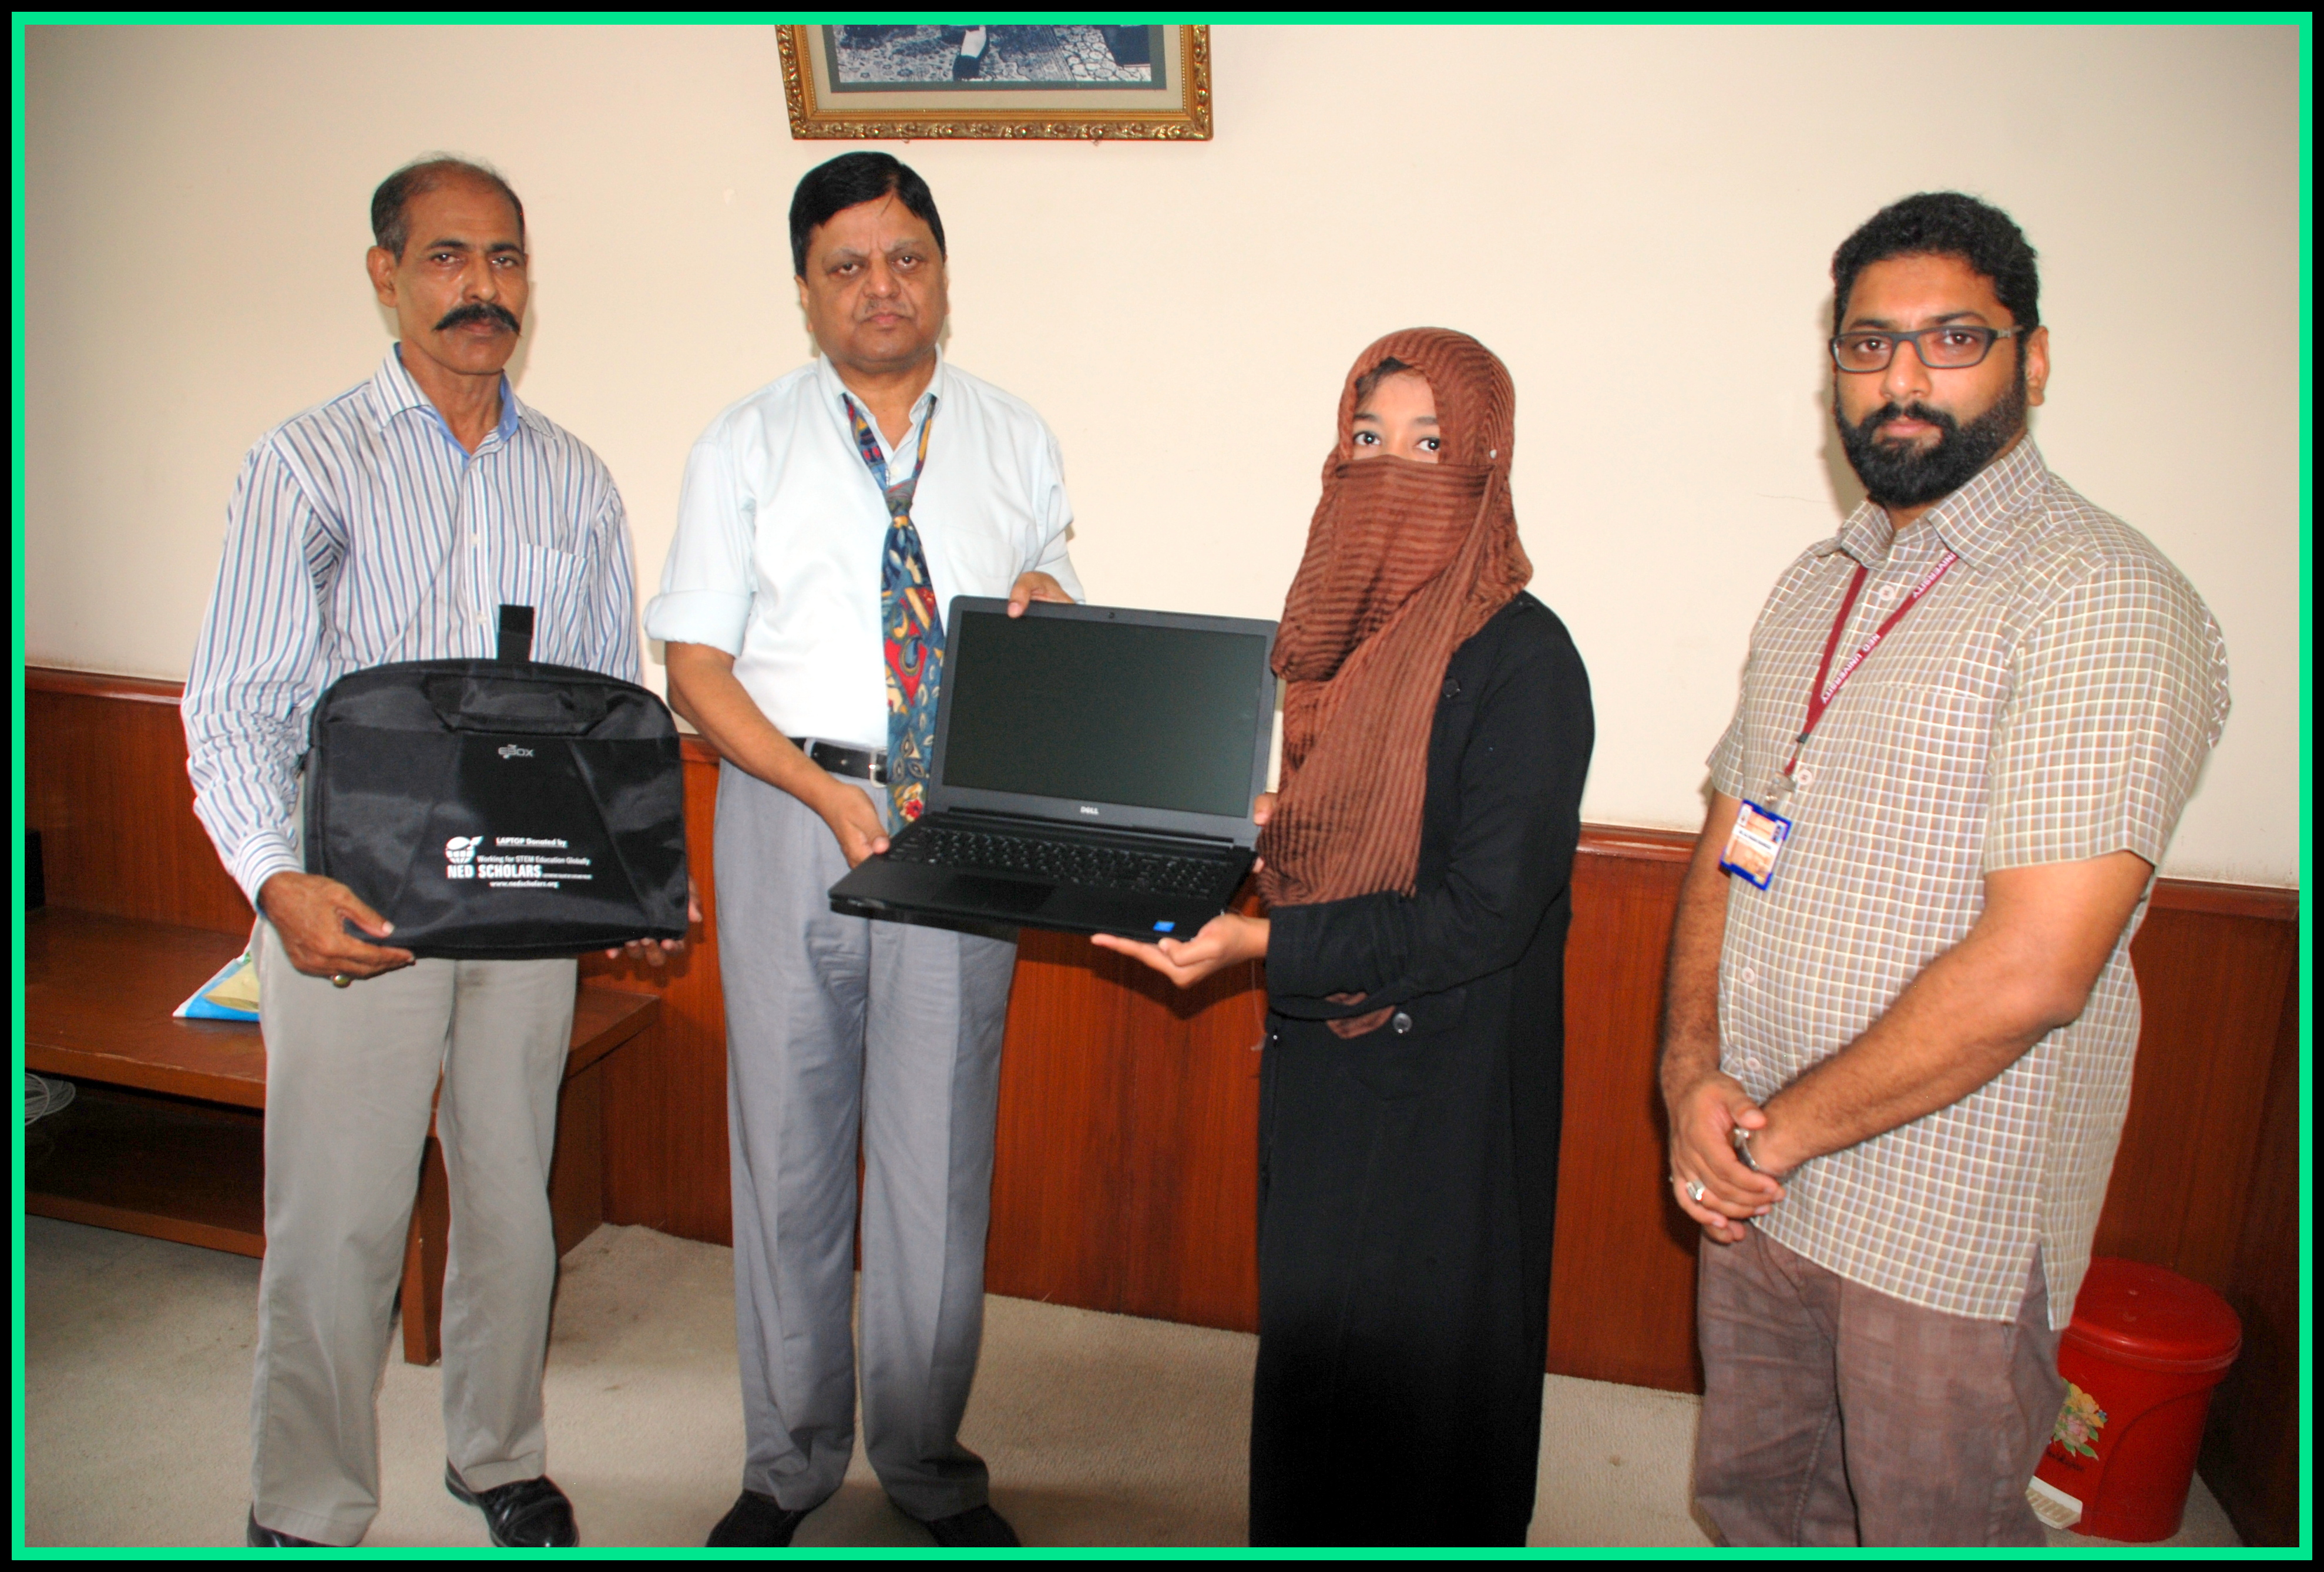 Amna receiving her laptop from NED VC